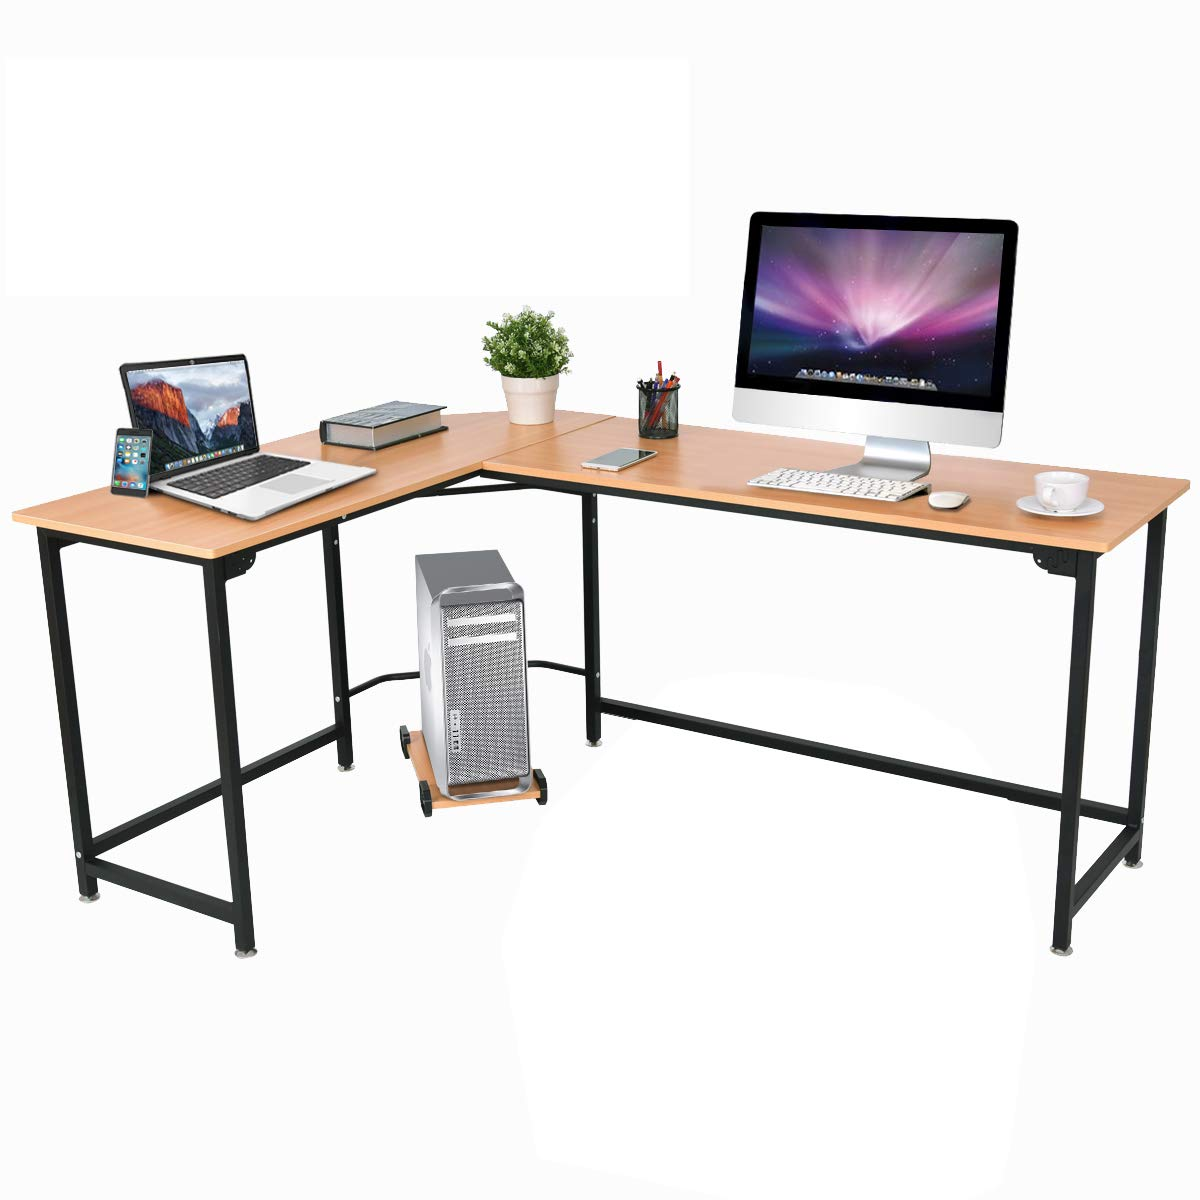 Tangkula 66 Computer Desk, L-Shaped Corner Writing Table Smooth Top Home Office Workstation Modern Study Laptop Desk with CPU Stand Natural